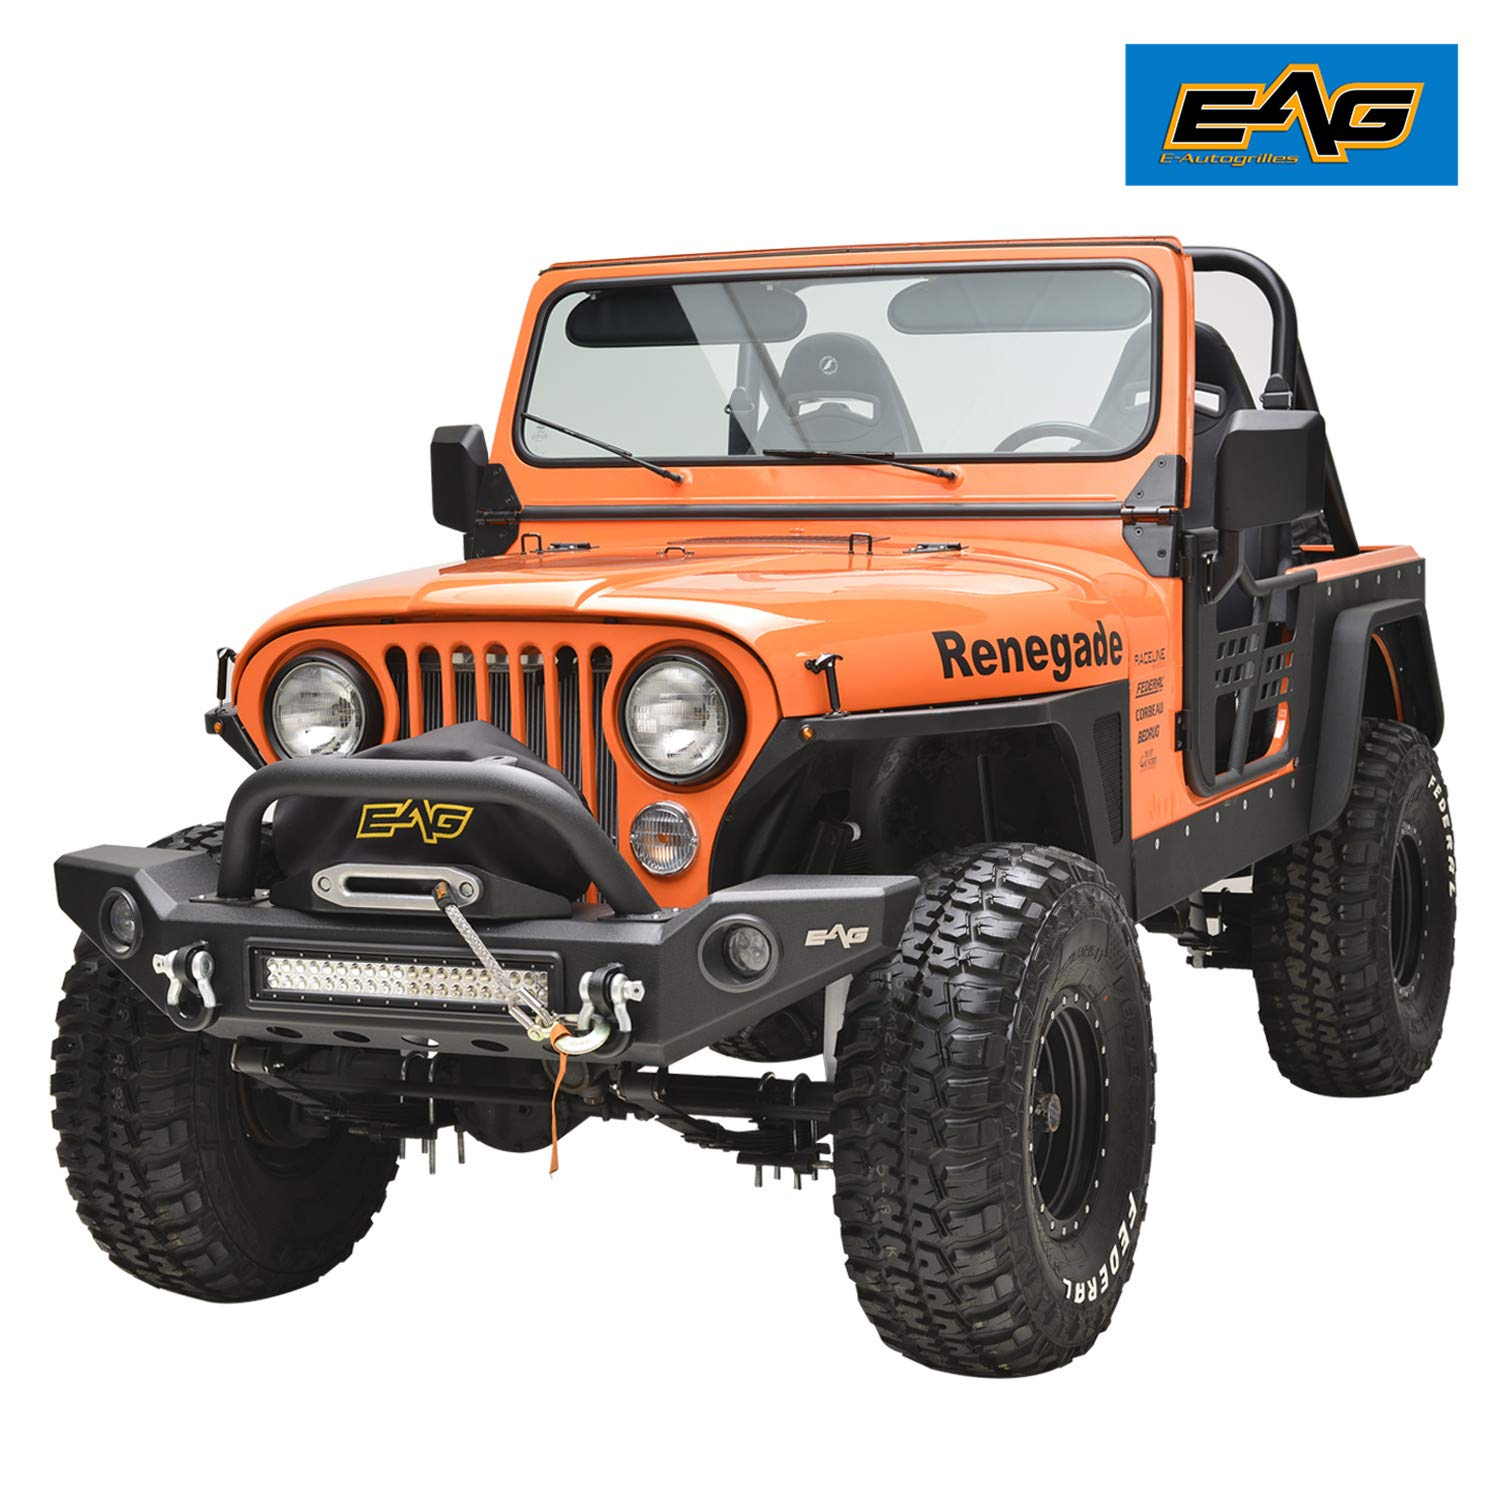 EAG Rock Crawler Full Width Front Bumper With LED Lights /& Light Surrounds for 76-86 Jeep Wrangler CJ